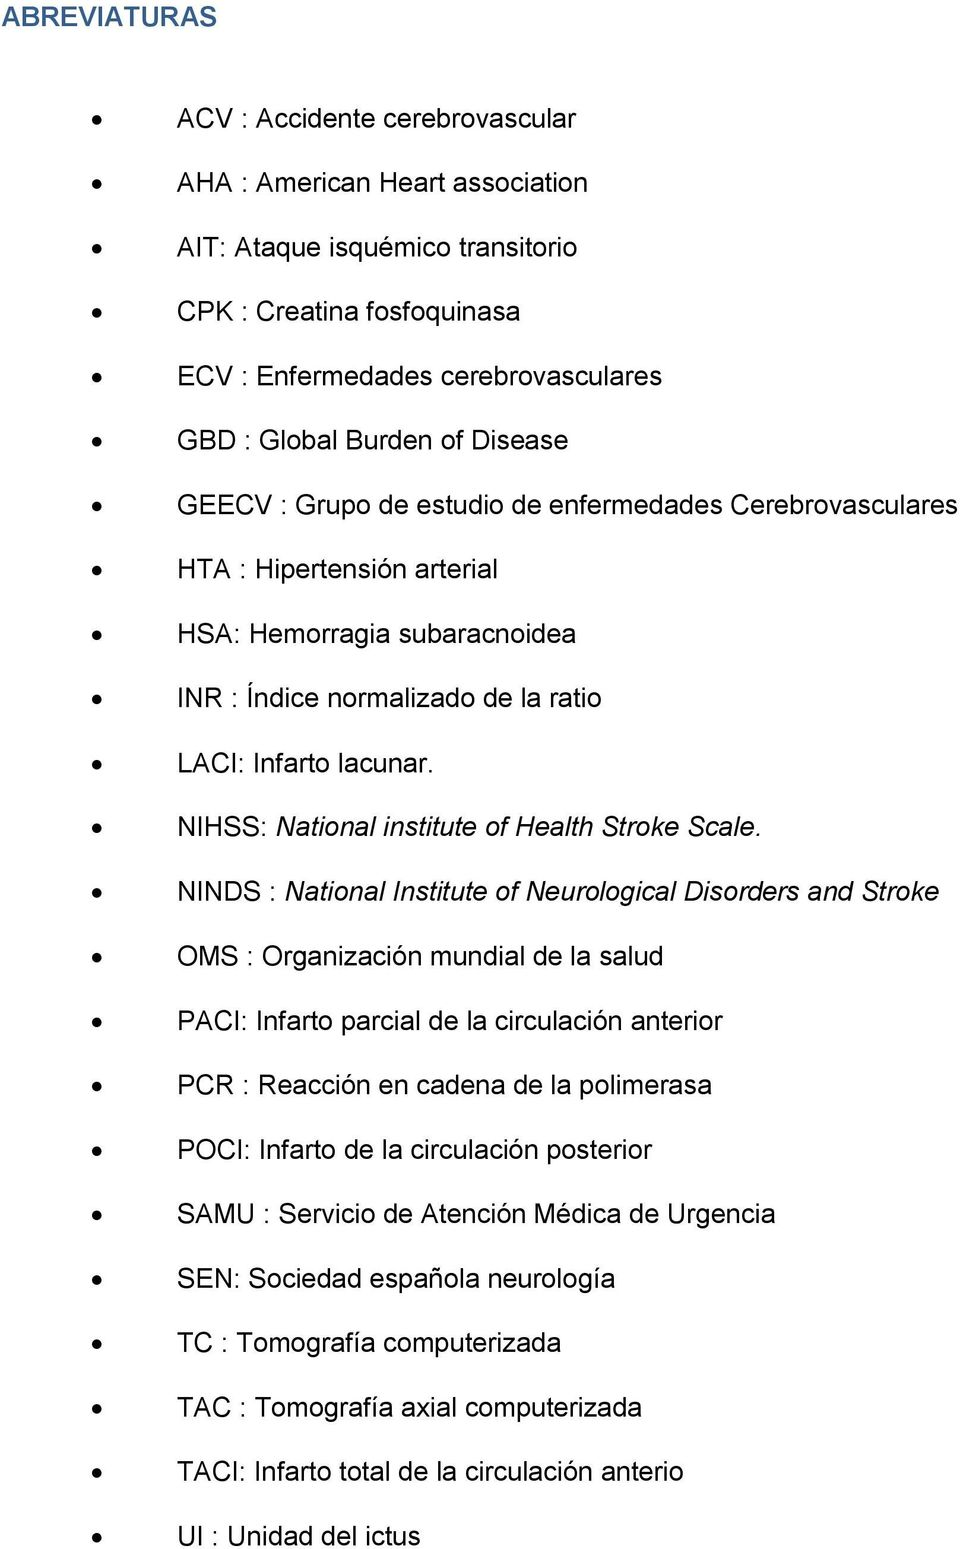 NIHSS: National institute of Health Stroke Scale.